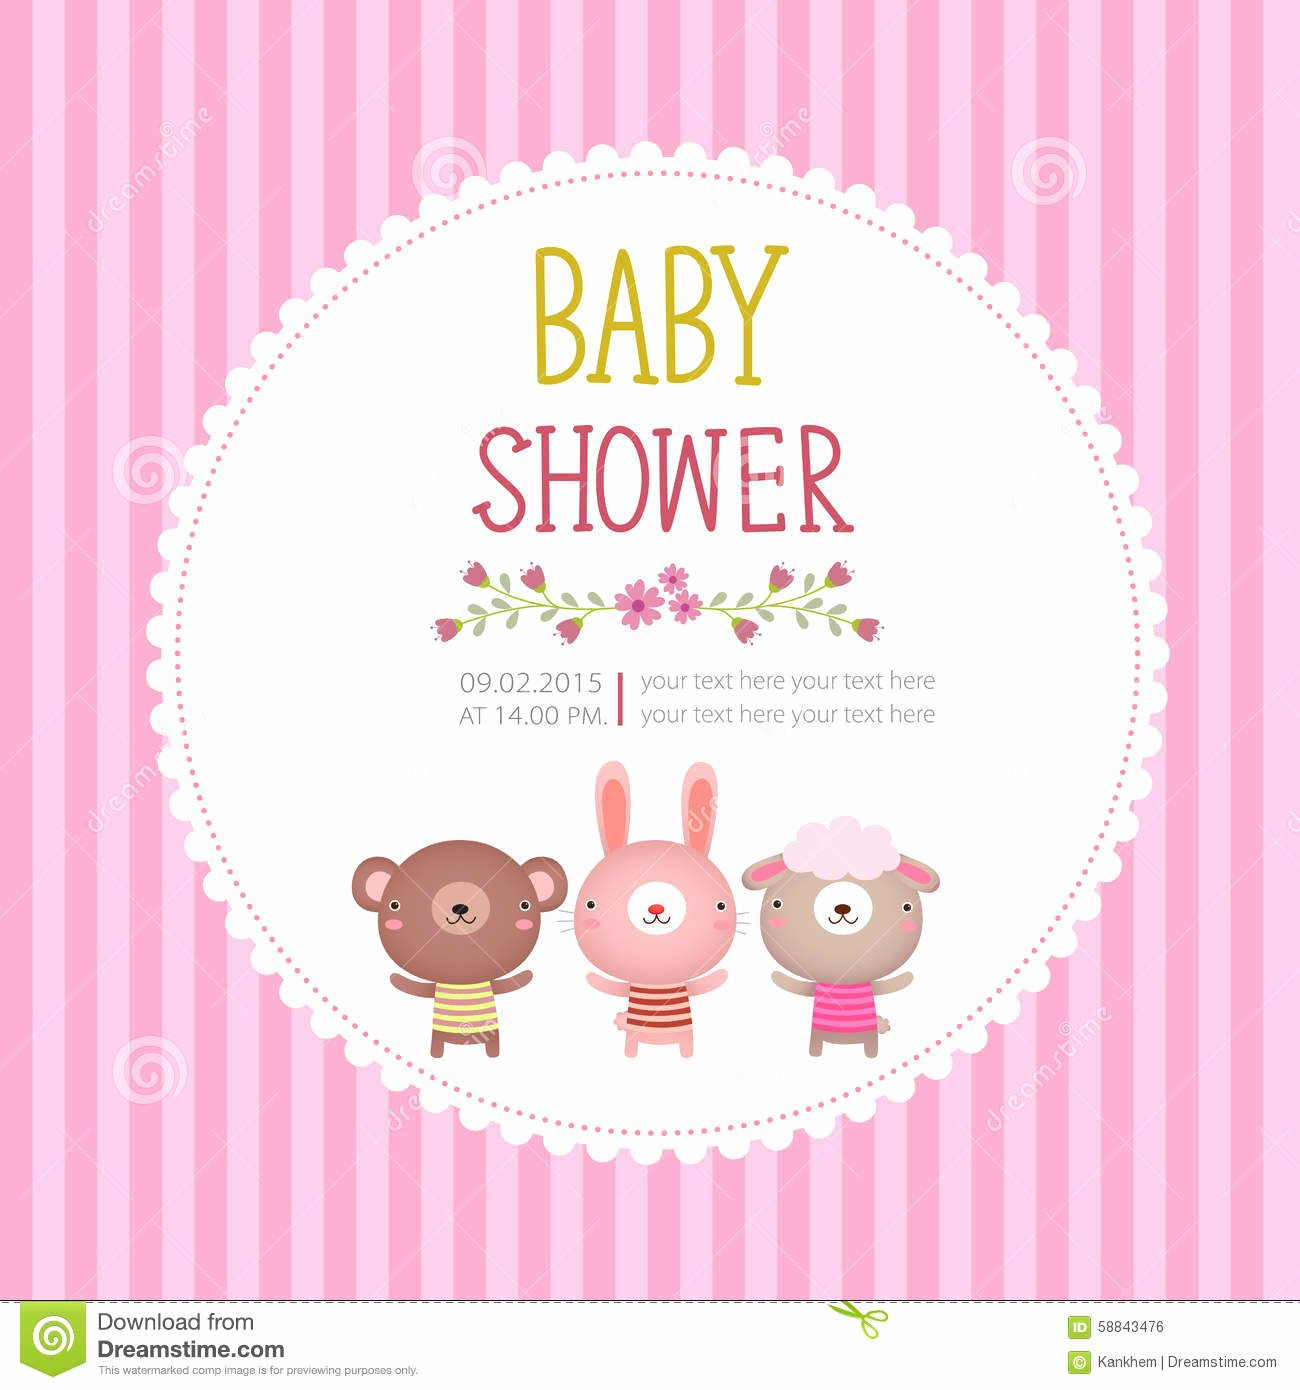 Baby Shower Invitation Card Template Free Download